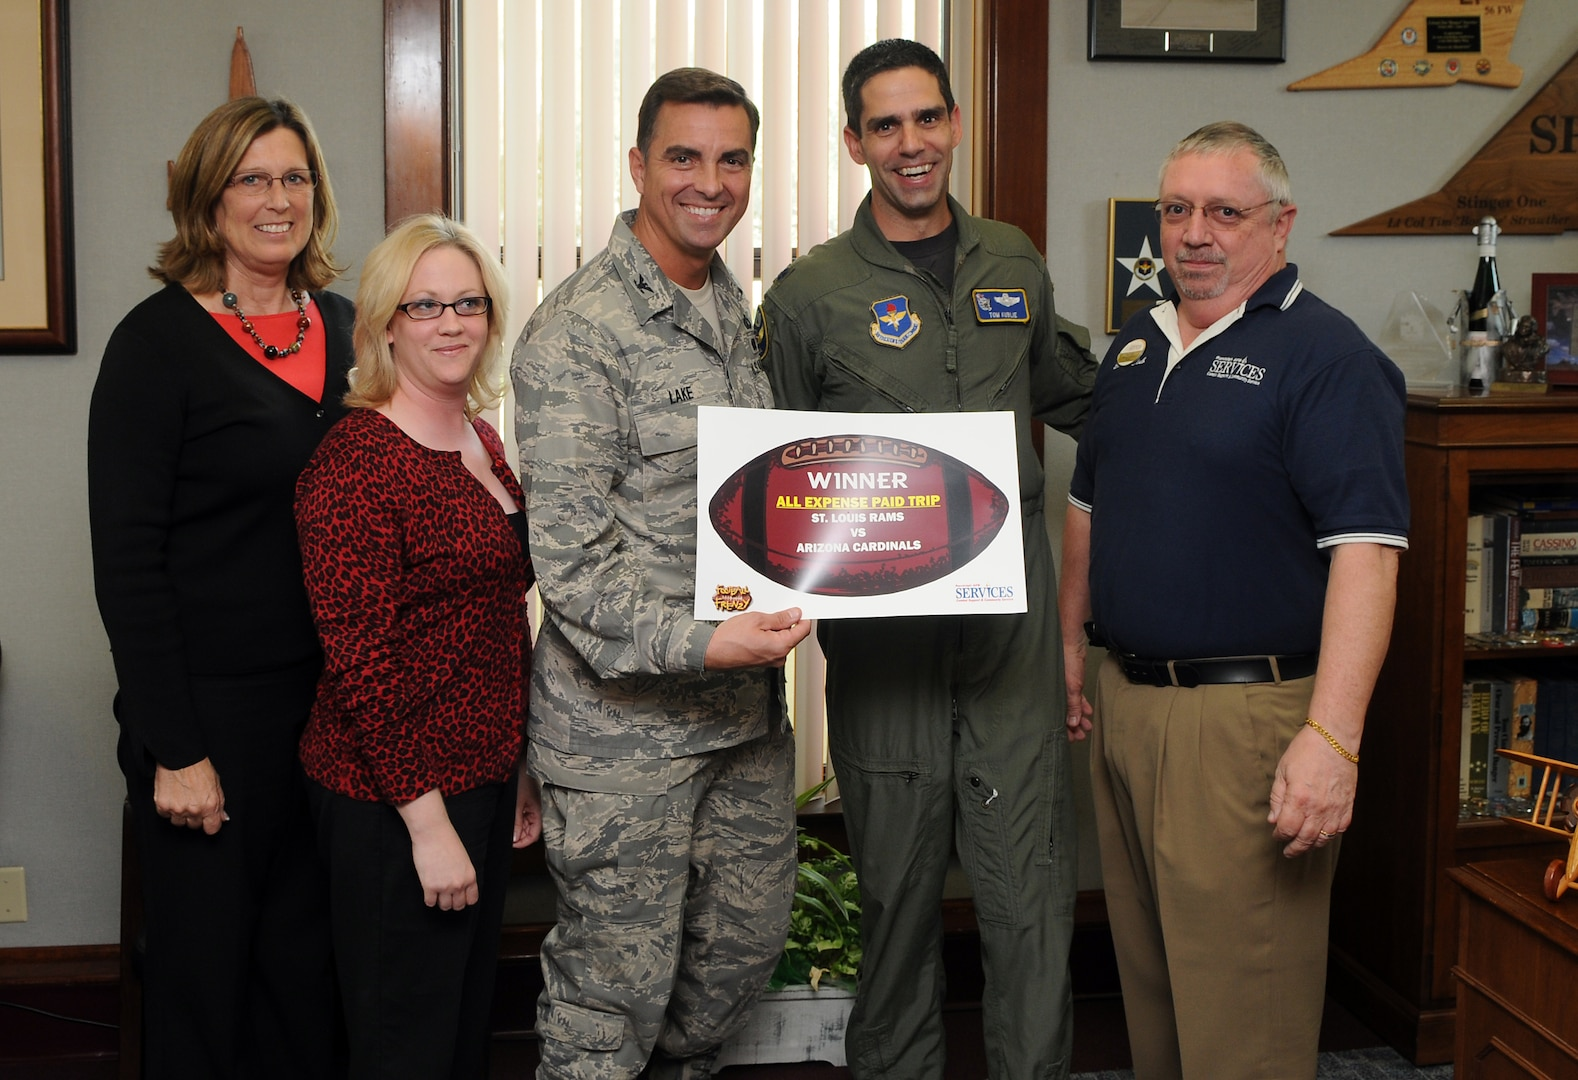 Col. Alan Lake (left), 12th Mission Support Group commander, surprises Lt. Col. Tom Kublie, 19th Air Force Undergraduate Training Branch chief, on Oct. 21 with an all-expense paid trip for two to watch the Arizona Cardinals play the St. Louis Rams on Dec. 7. Colonel Kublie entered the Football Frenzy competition held by the Air Force Services Agency and was selected as the regular season game package winner. The grand prize, which includes an all-expense paid trip for two to Super Bowl XLIII in Tampa Bay, Fla., will be held in early January. Services Club members who attend a Football Frenzy celebration at the enlisted or officers' club can enter by filling out a form, with no purchase neccessary. (U.S. Air Force photo by Rich McFadden)